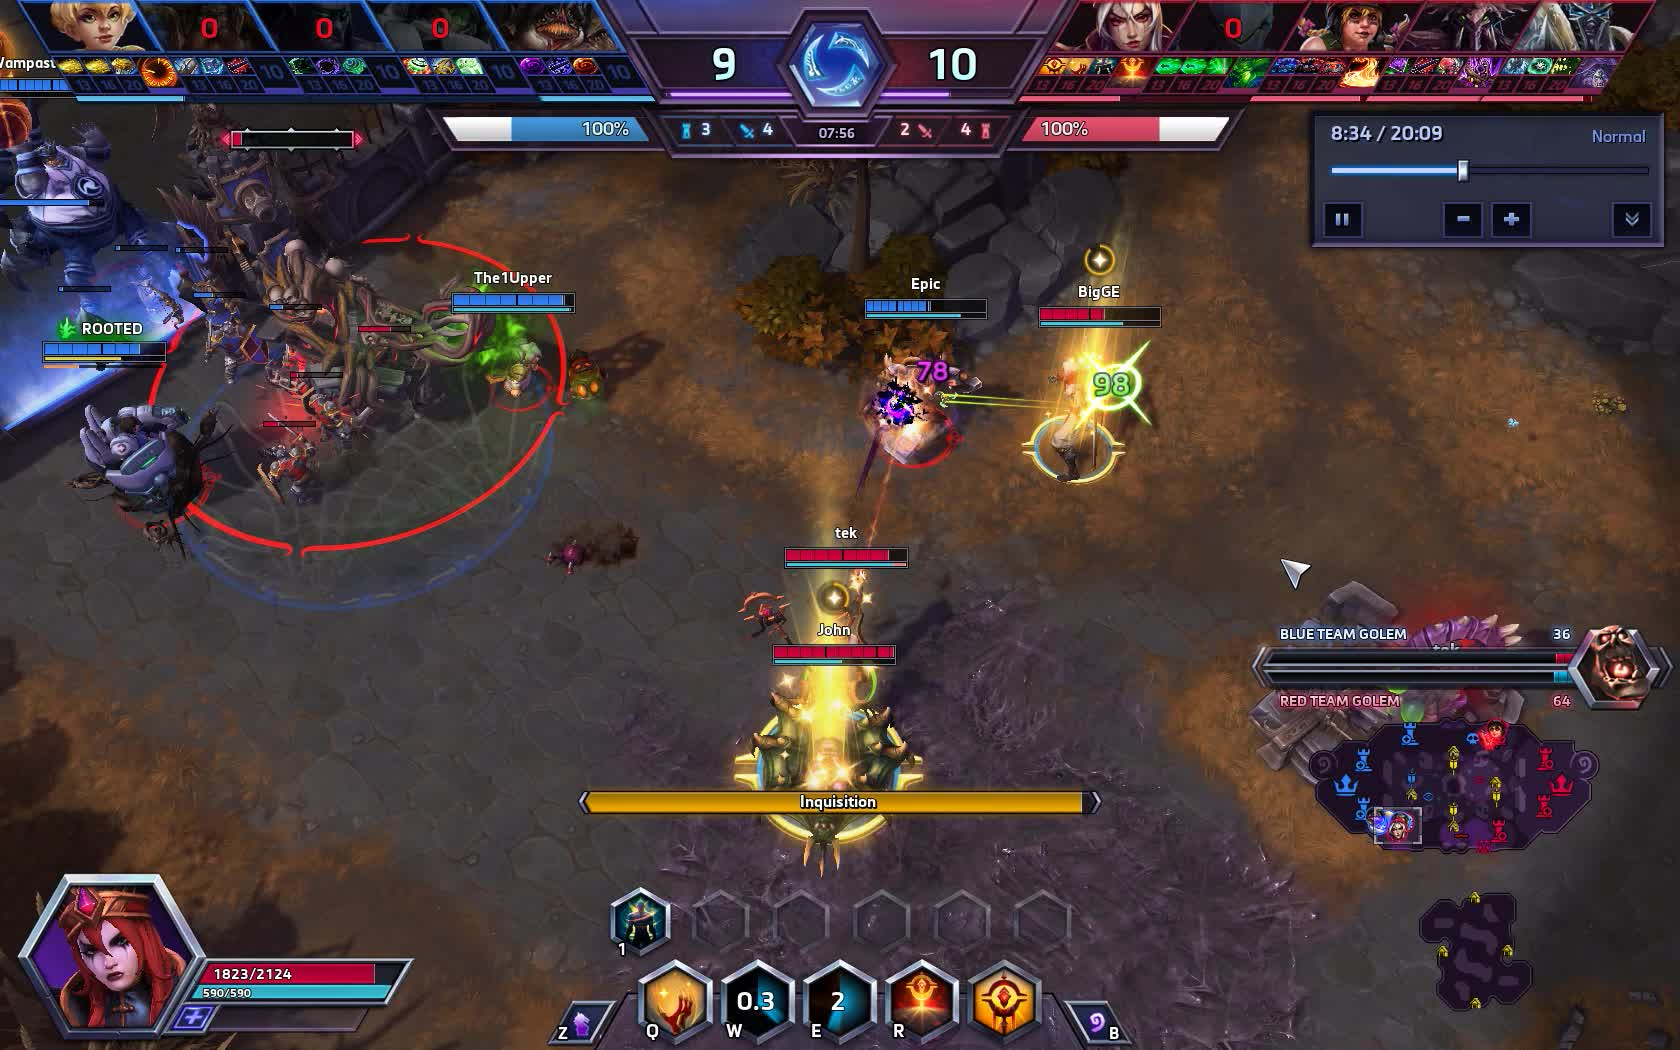 heroesofthestorm, Heroes of the Storm 2018.08.08 - 18.57.11.01 GIFs